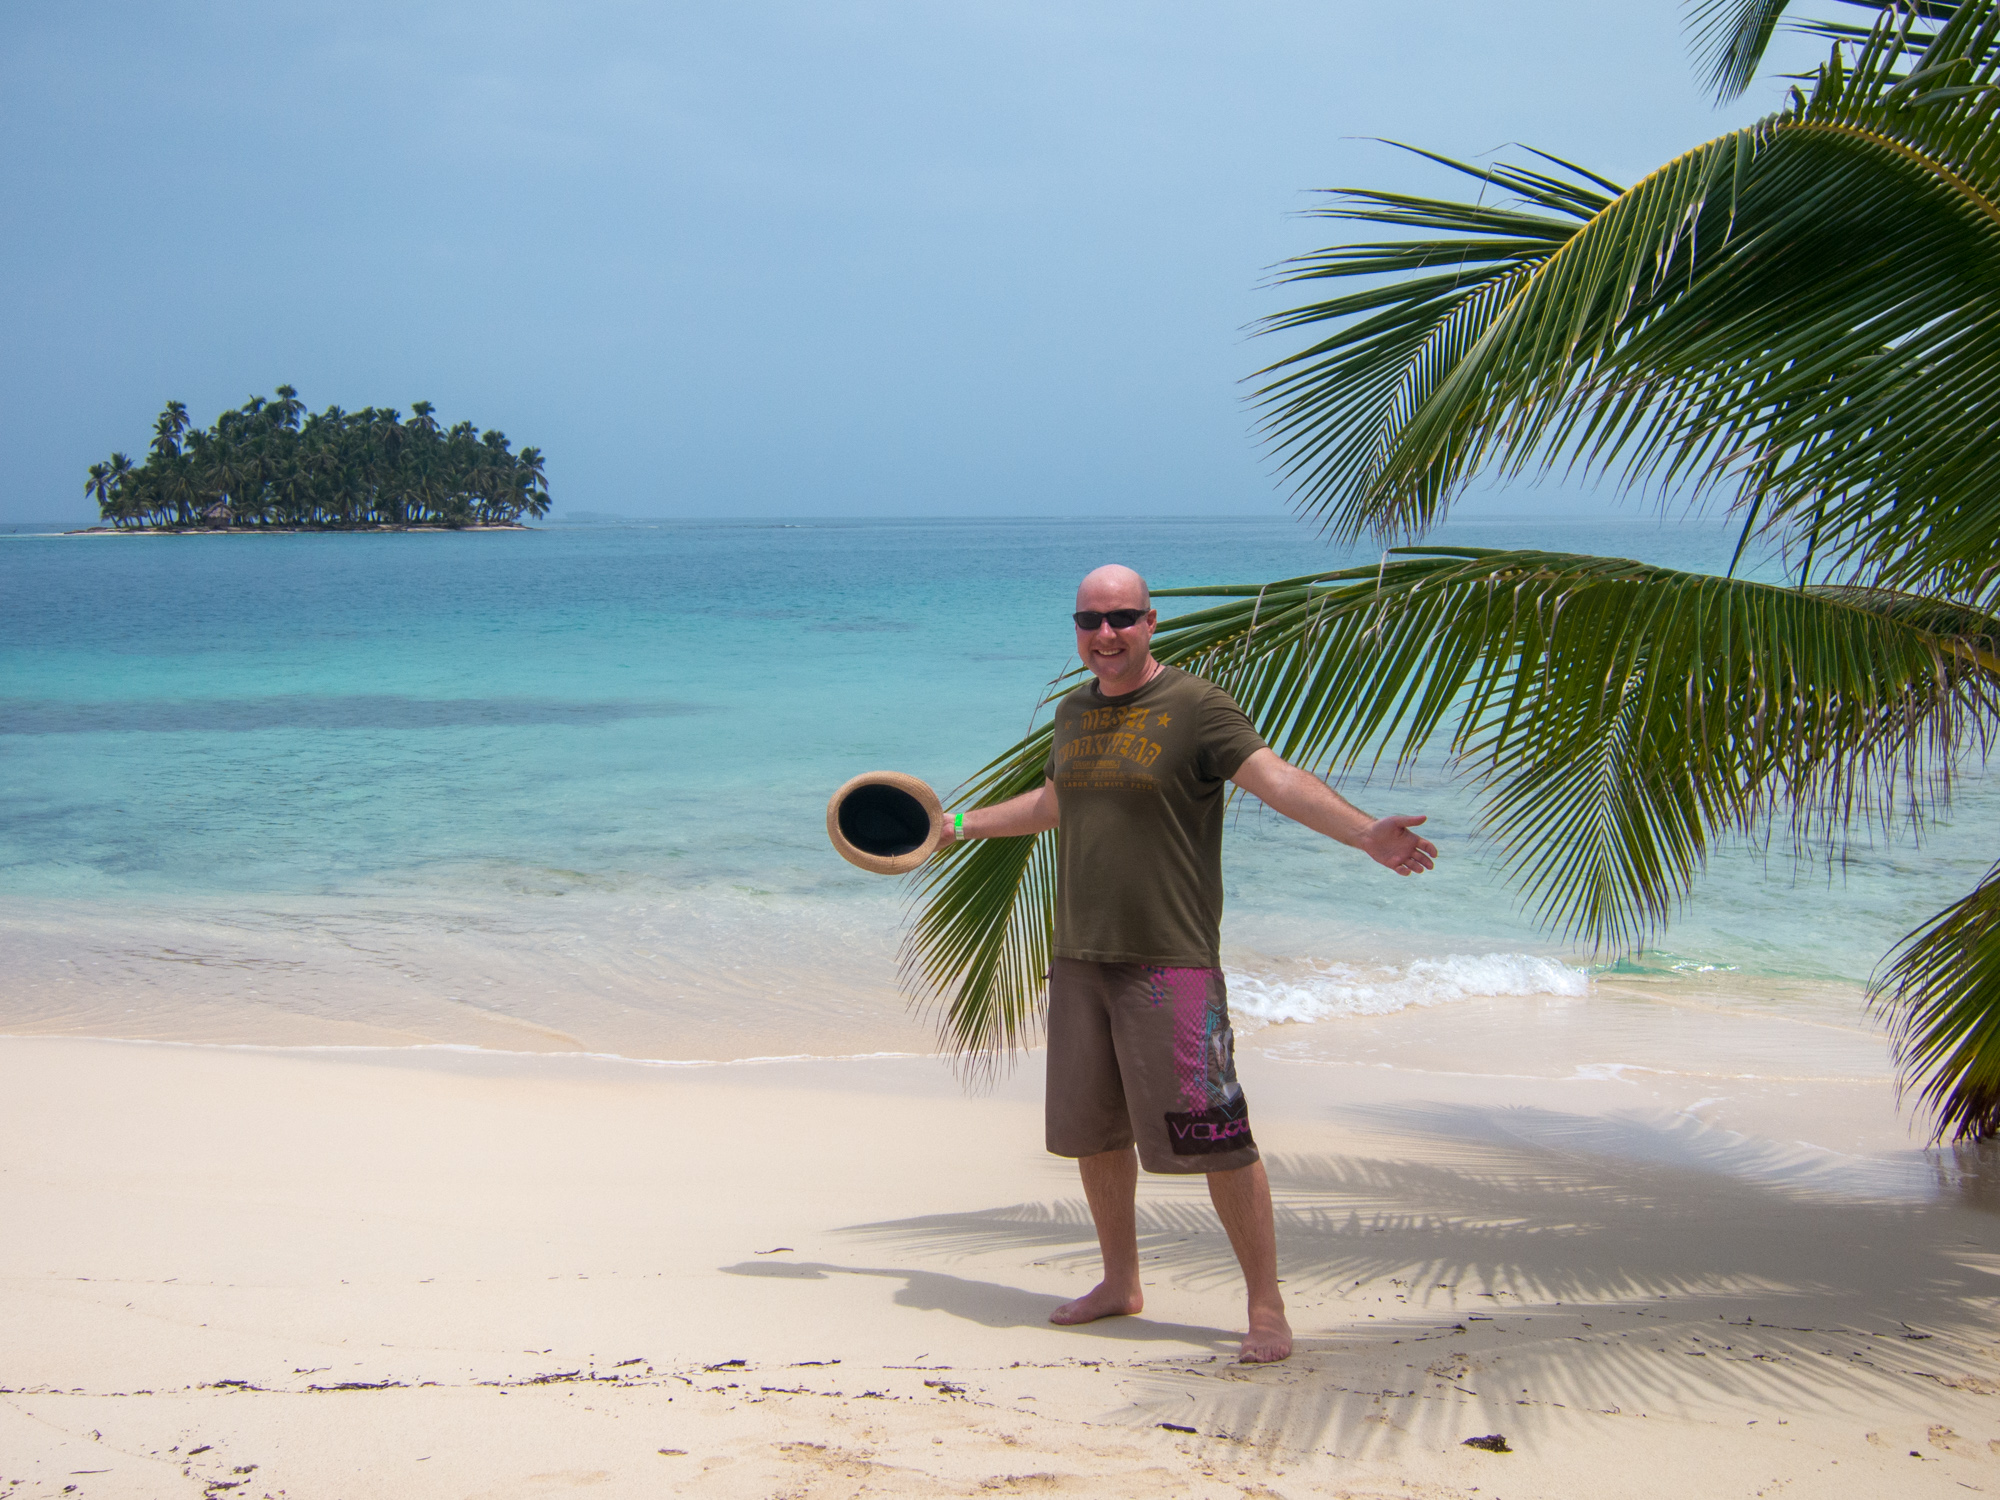 Dave in paradise